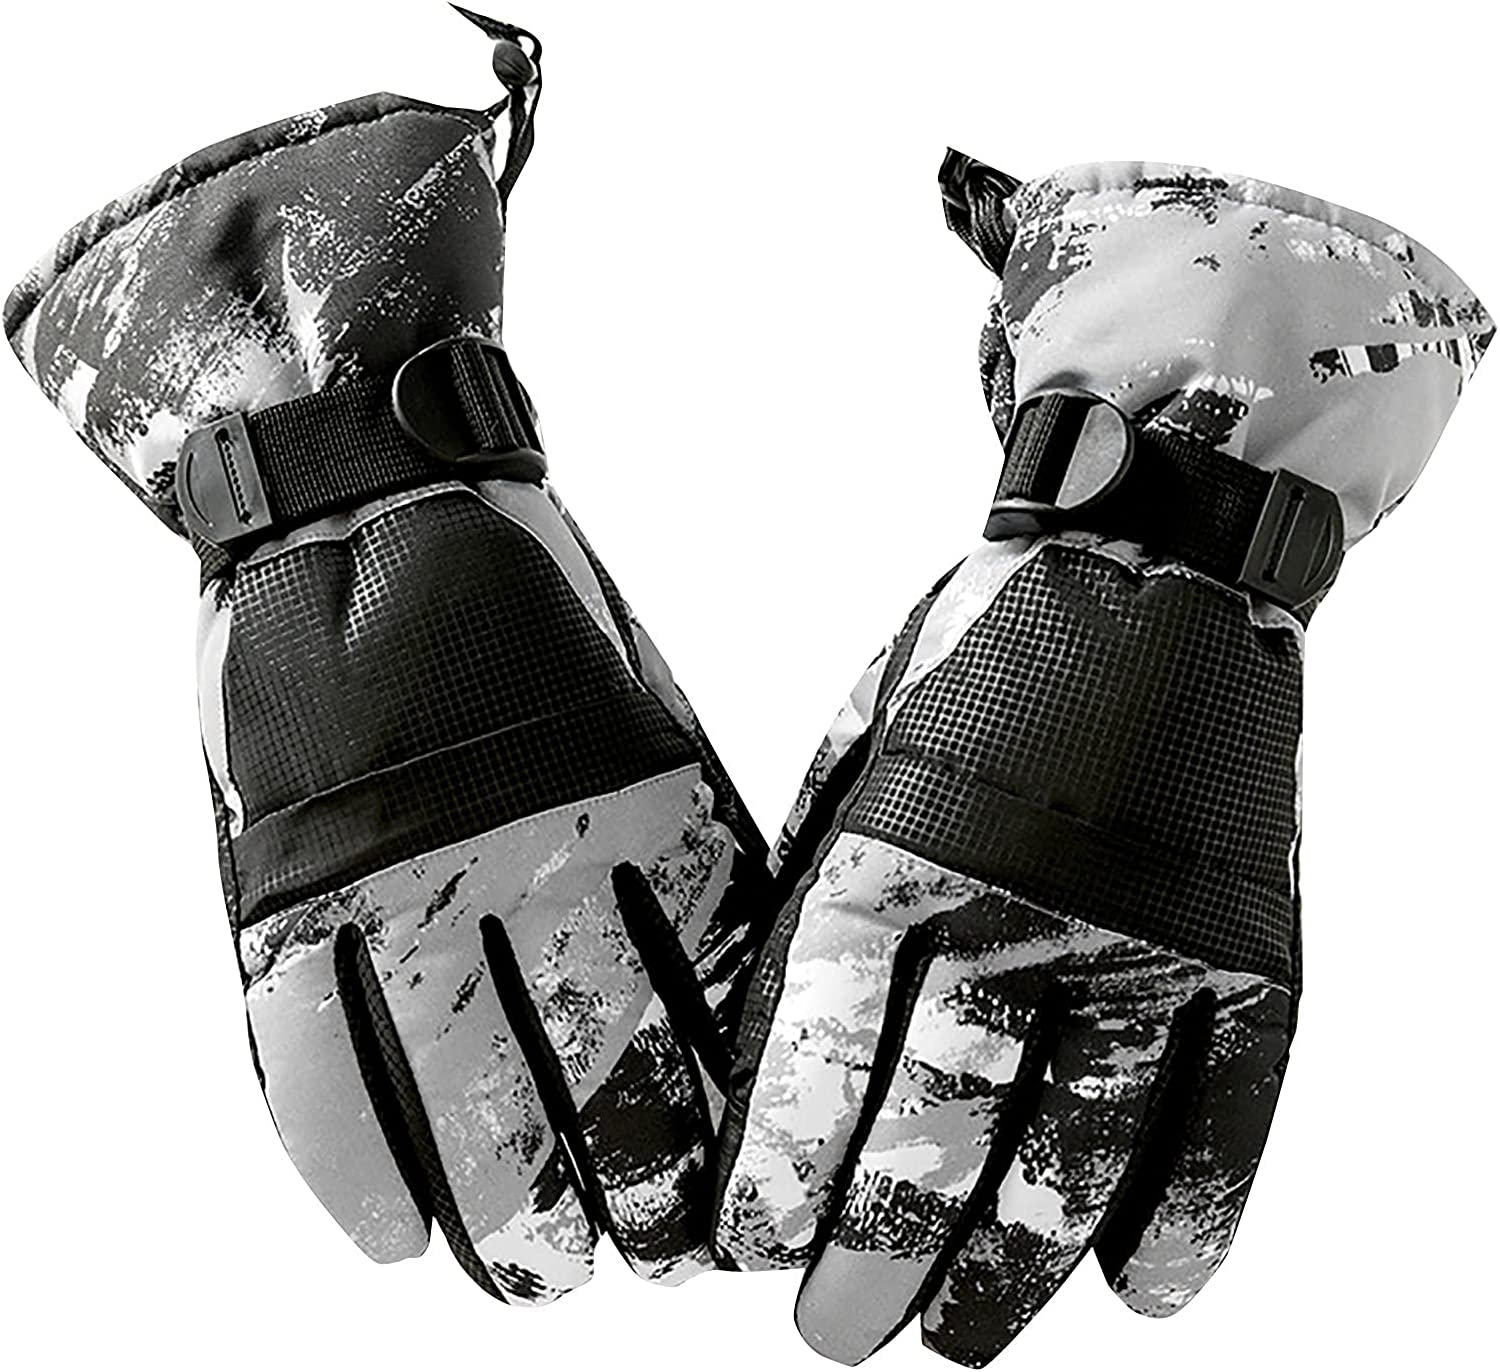 Warm Ski Gloves Graffiti Riding Gloves Can Protect Against Cold And Wind Fashion/Prom/Warm/Bicycle Gloves